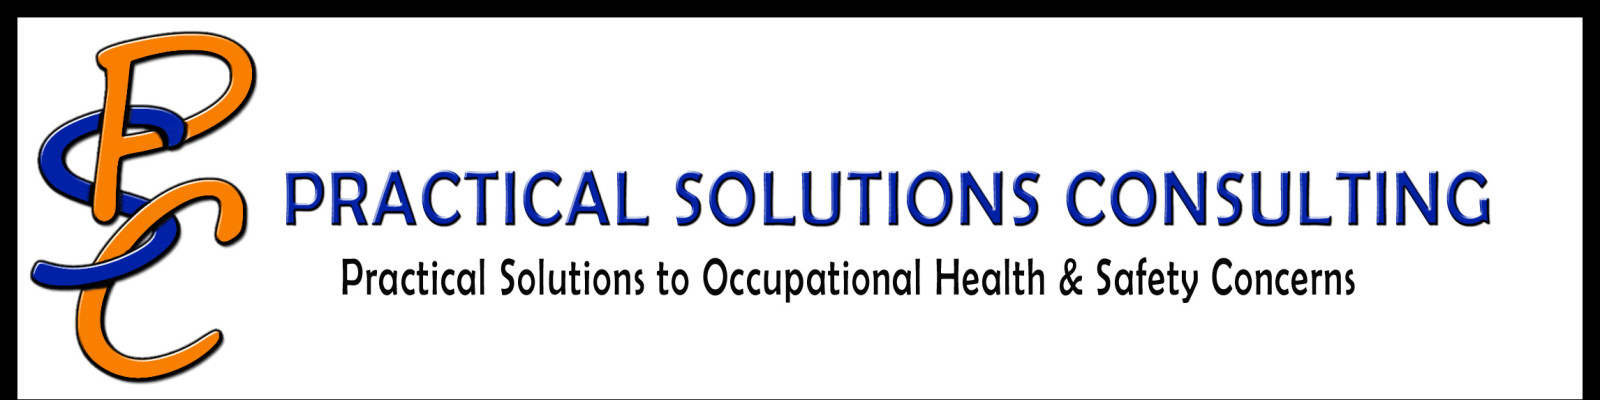 Practical Solutions Consulting